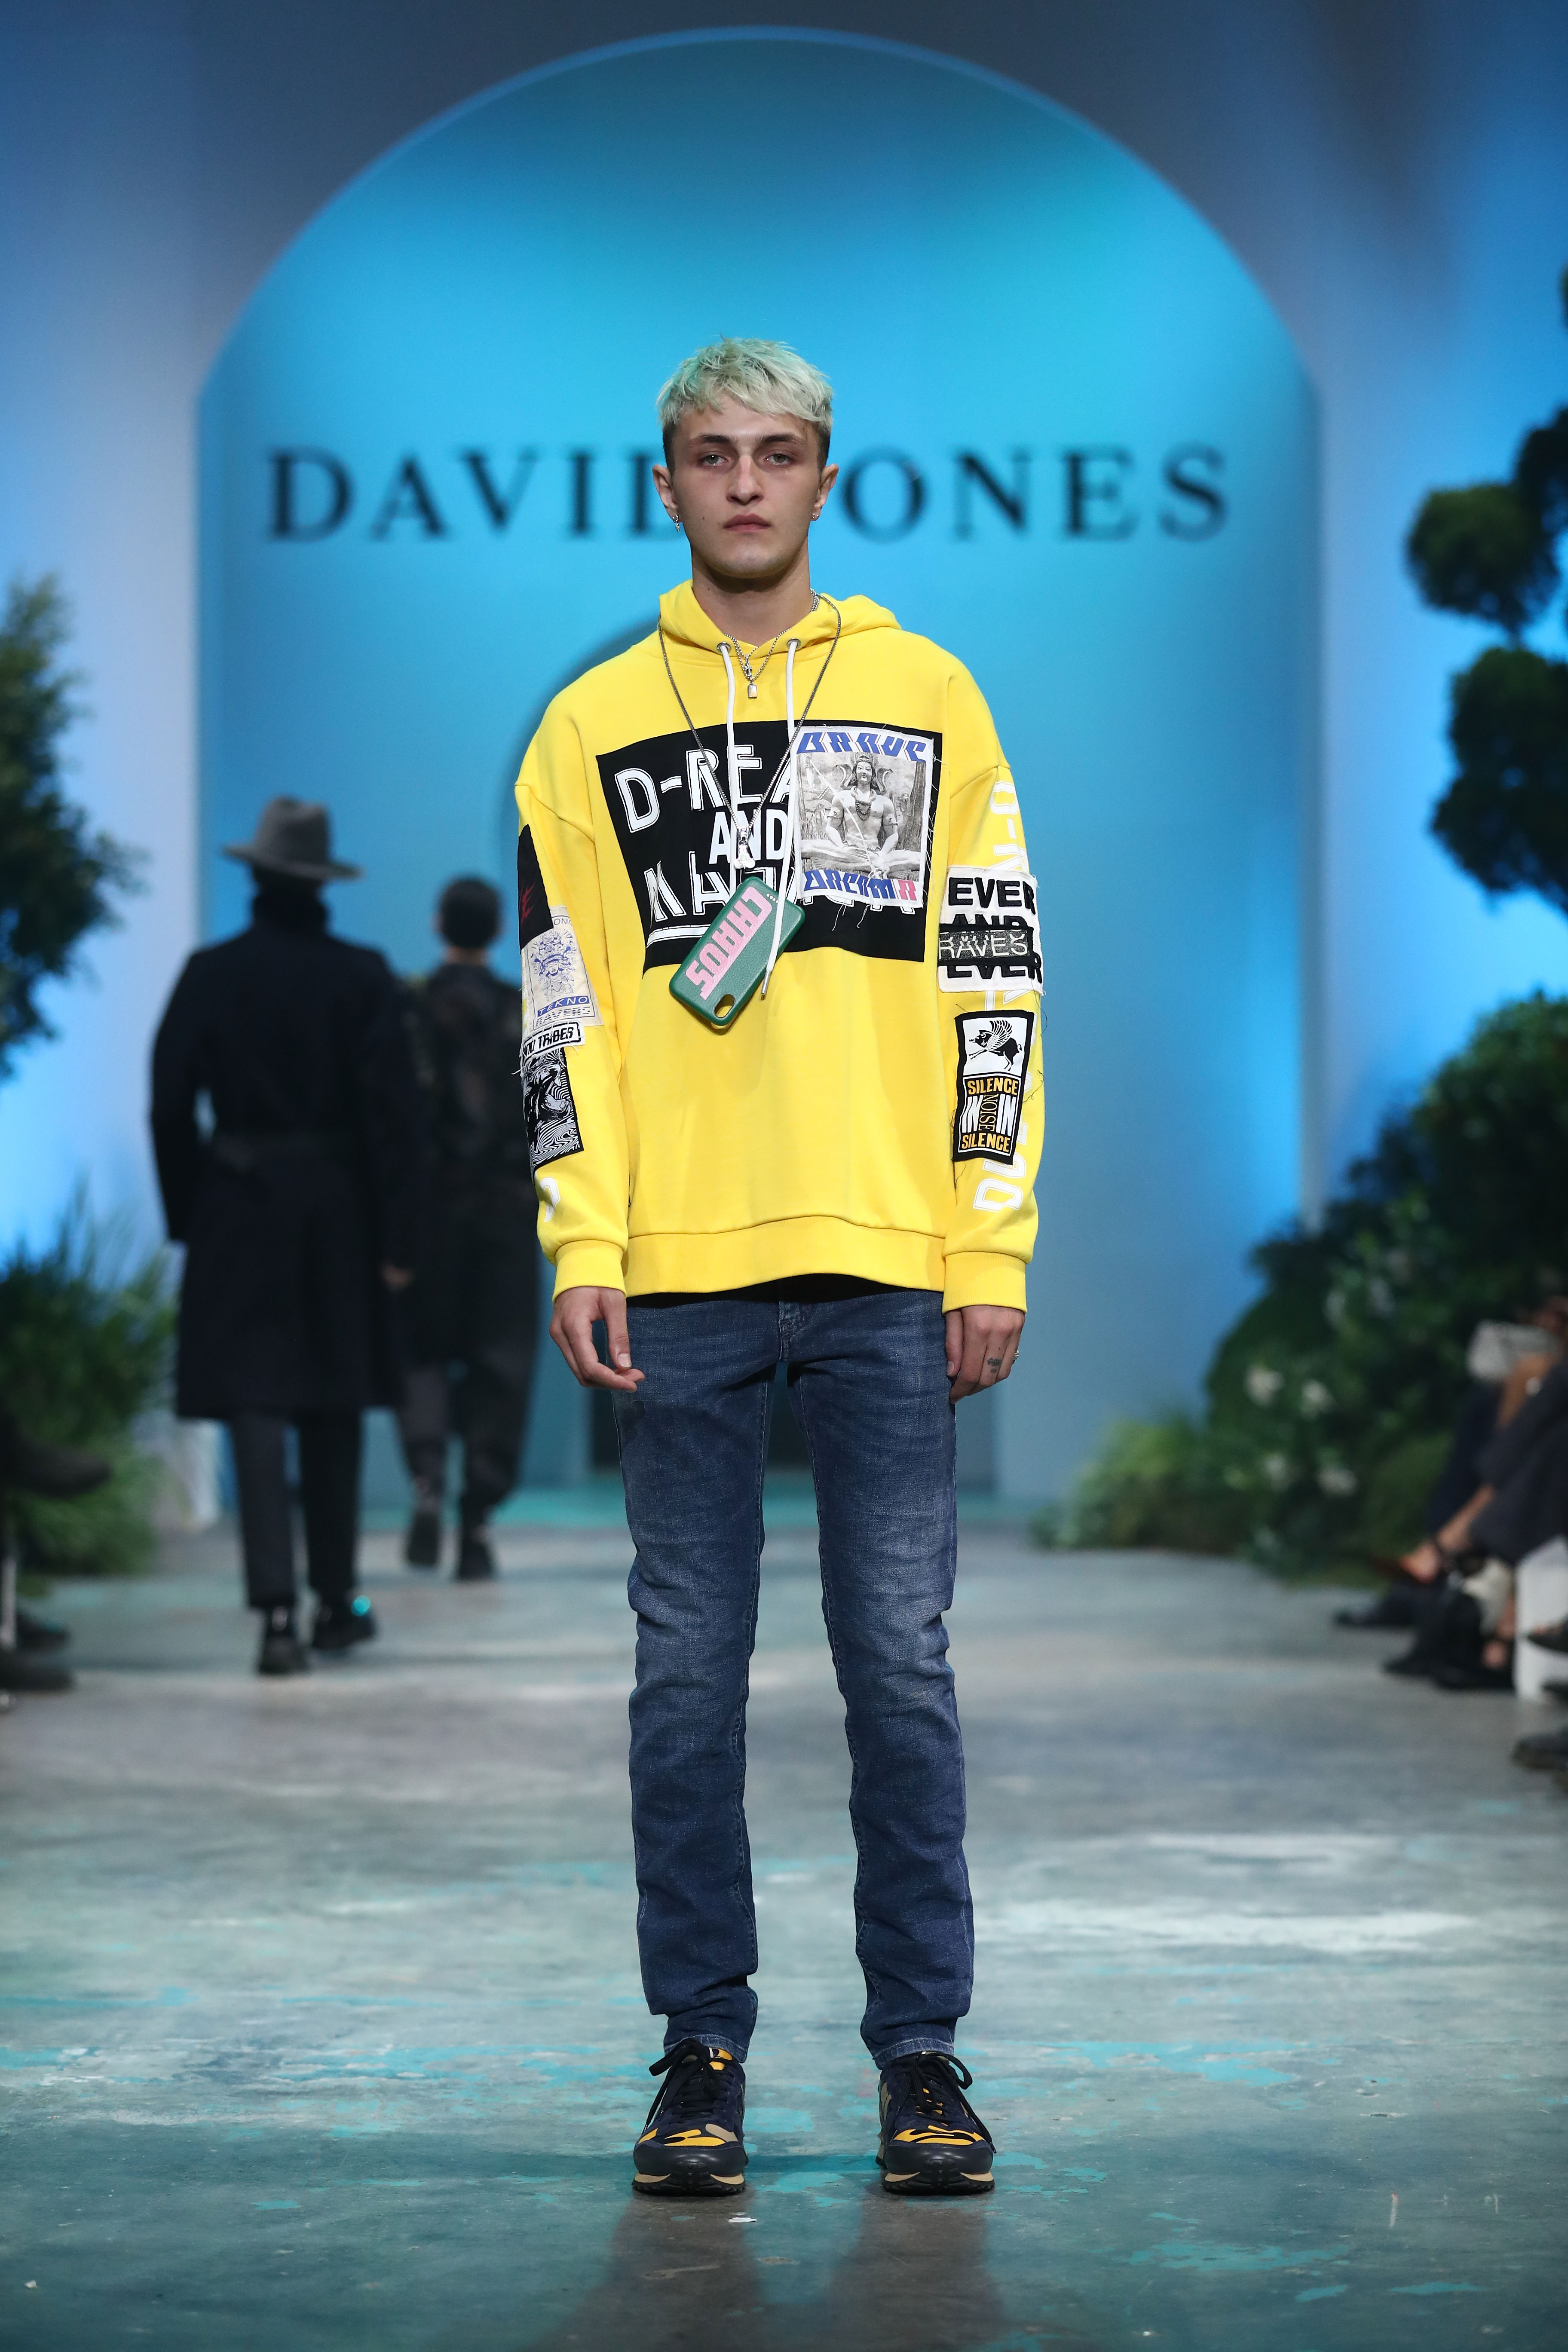 SYDNEY, AUSTRALIA - AUGUST 08:  Anwar Hadid showcases designs by Diesel during the David Jones Spring Summer 18 Collections Launch at Fox Studios on August 8, 2018 in Sydney, Australia.  (Photo by Mark Metcalfe/Getty Images for David Jones) *** Local Caption *** Anwar Hadid